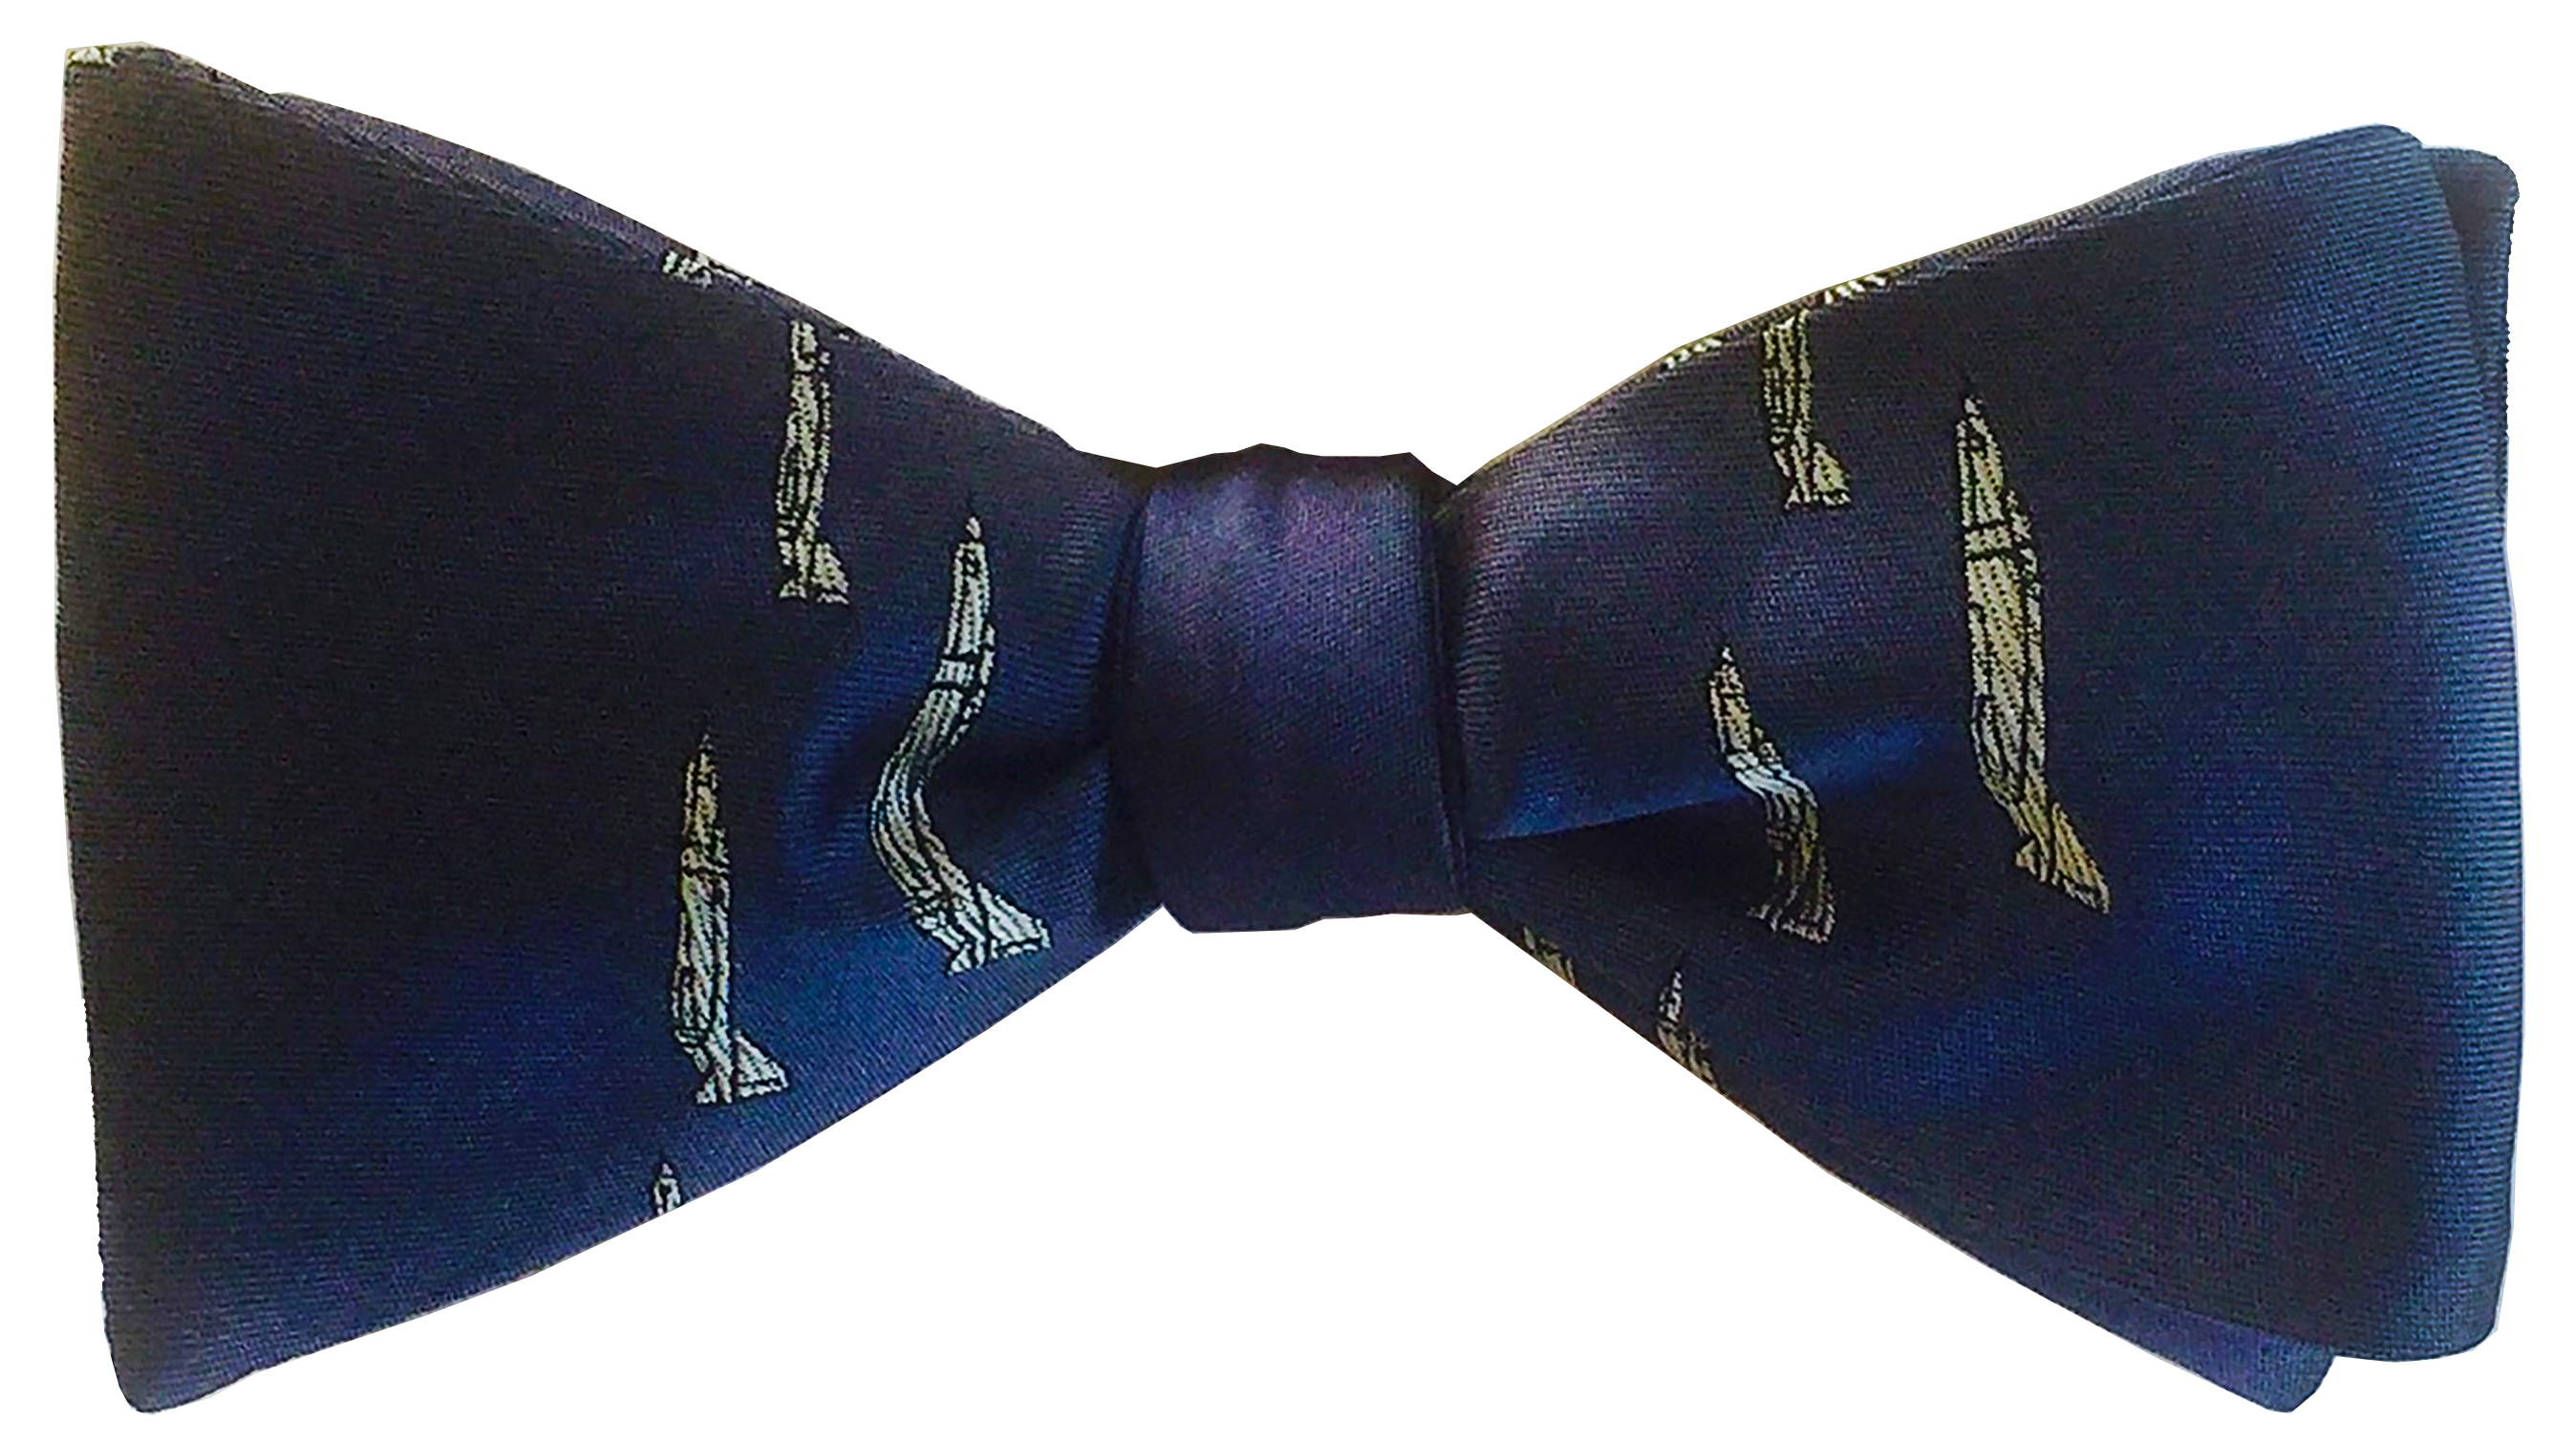 F-4 Phantom bow tie in navy and white